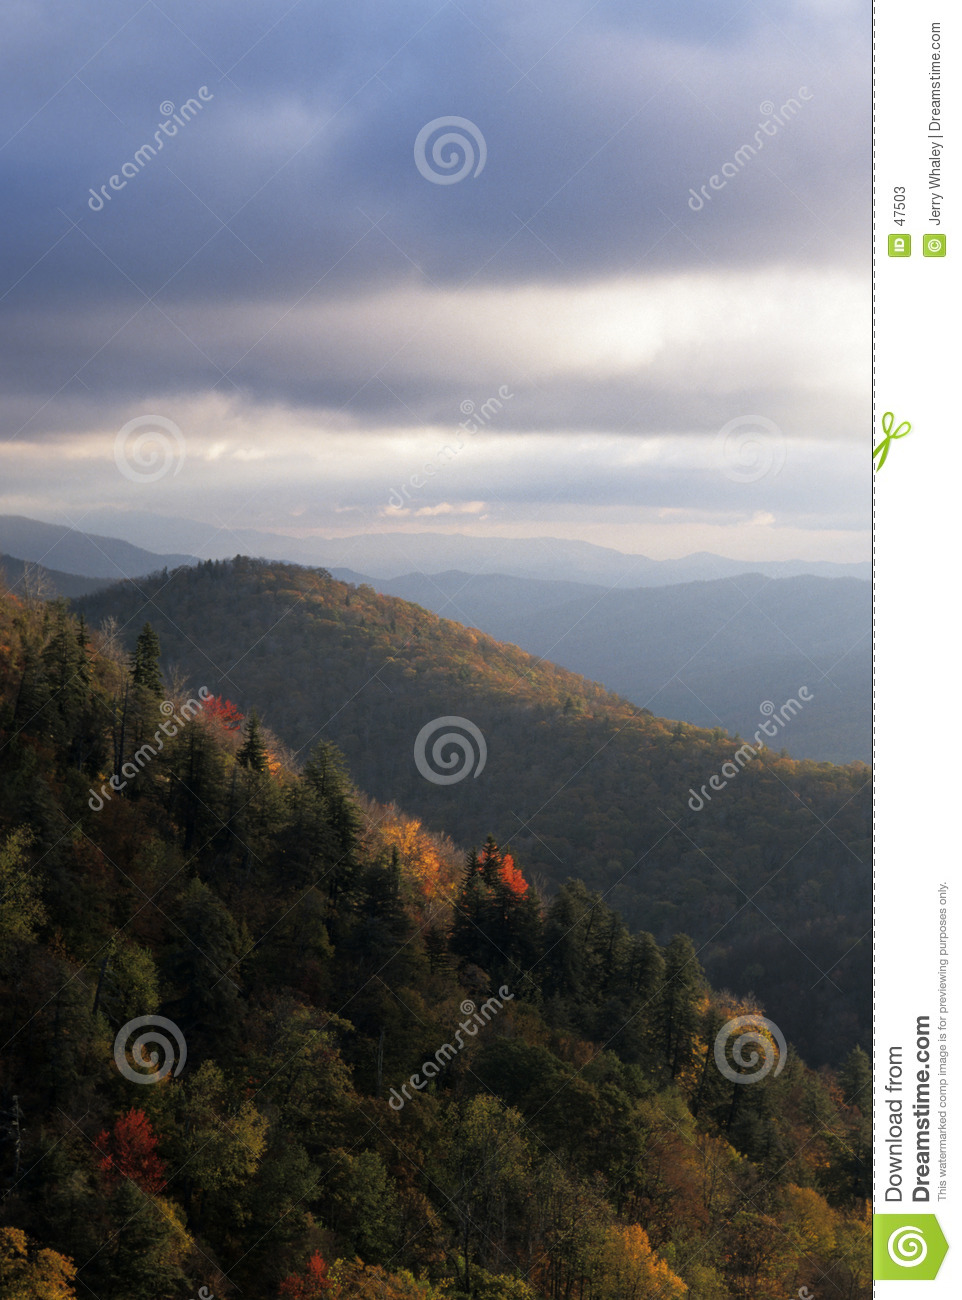 Autumn Scenic, Blue Ridge Parkway